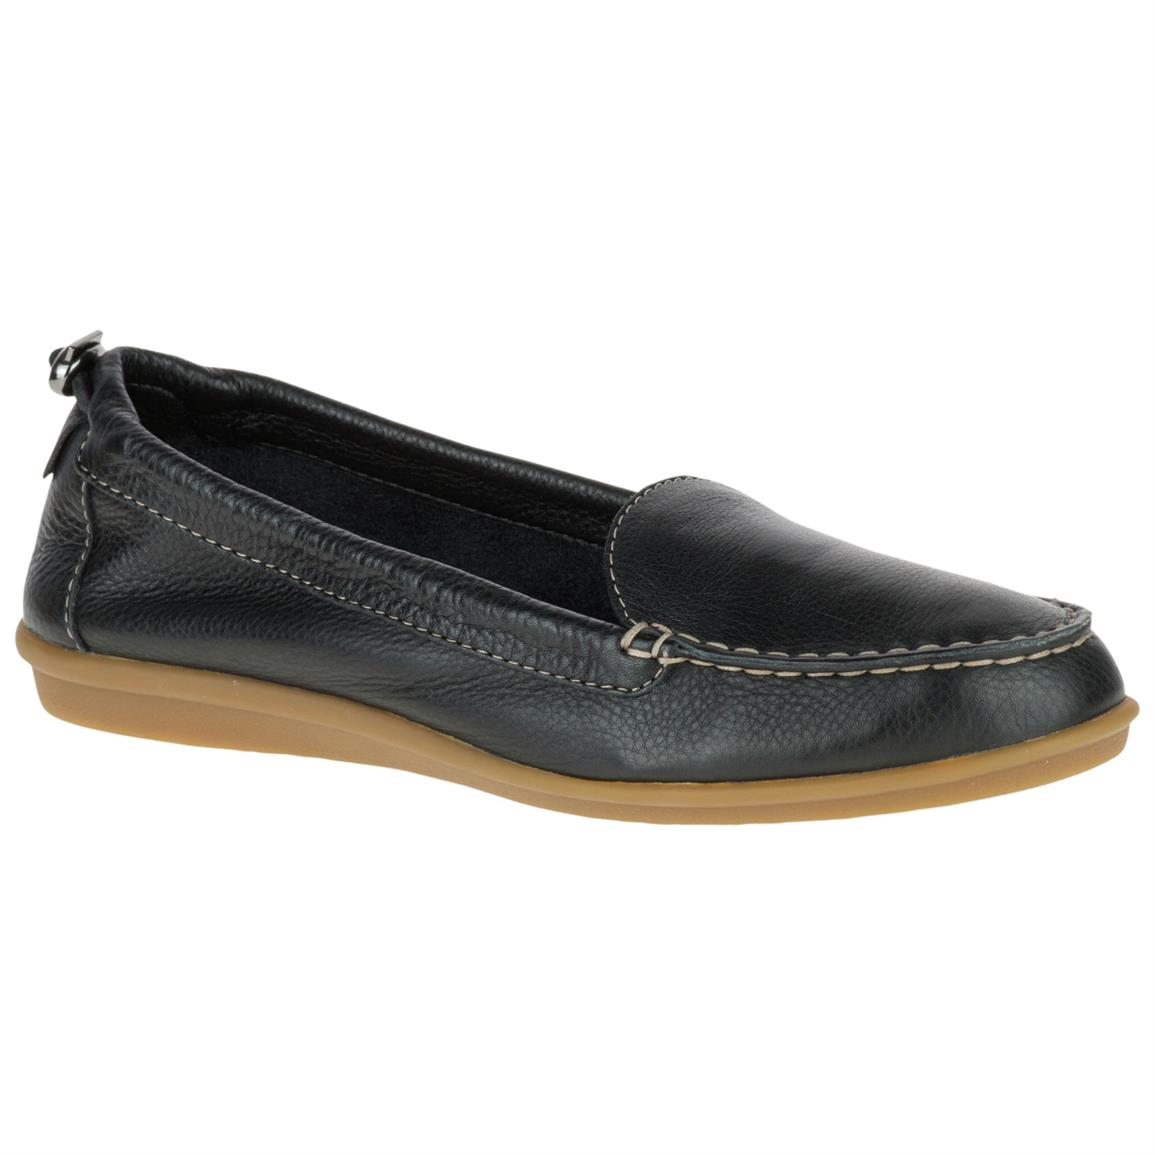 Hush Puppies Women's Endless Wink Casual Shoes, Black Leather